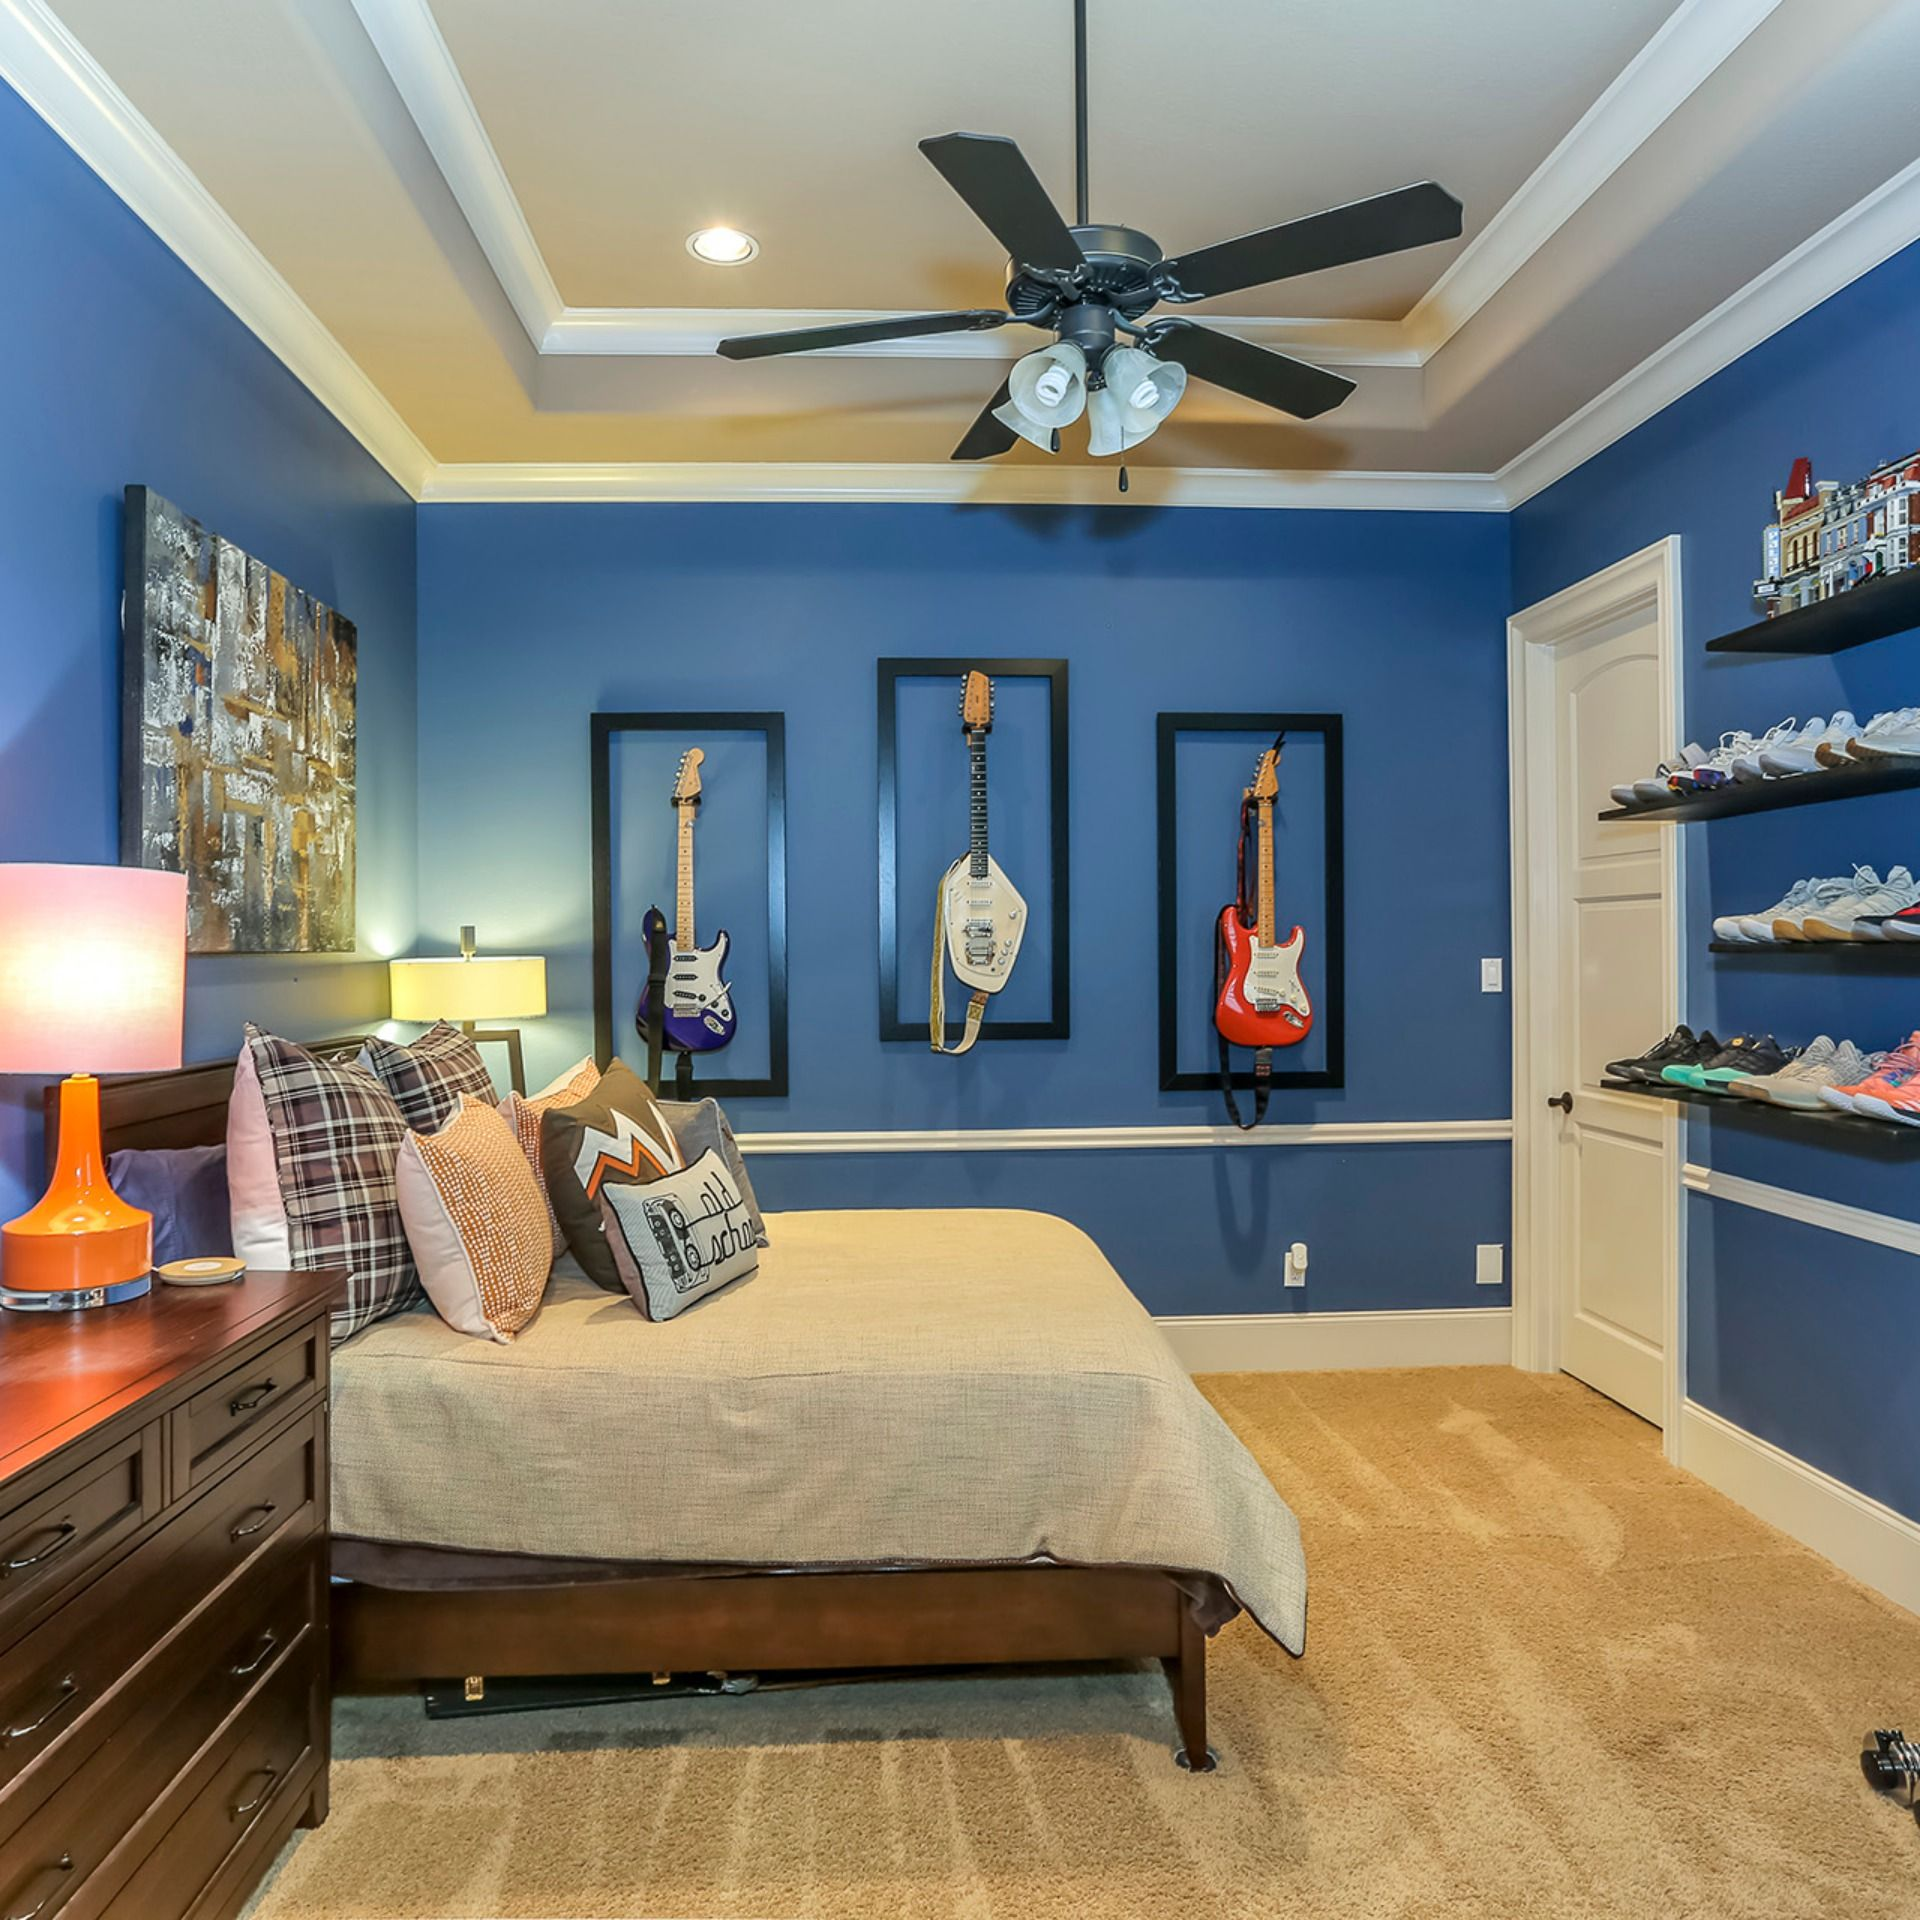 Pin By Decorating Den Interiors On Children's Room Design